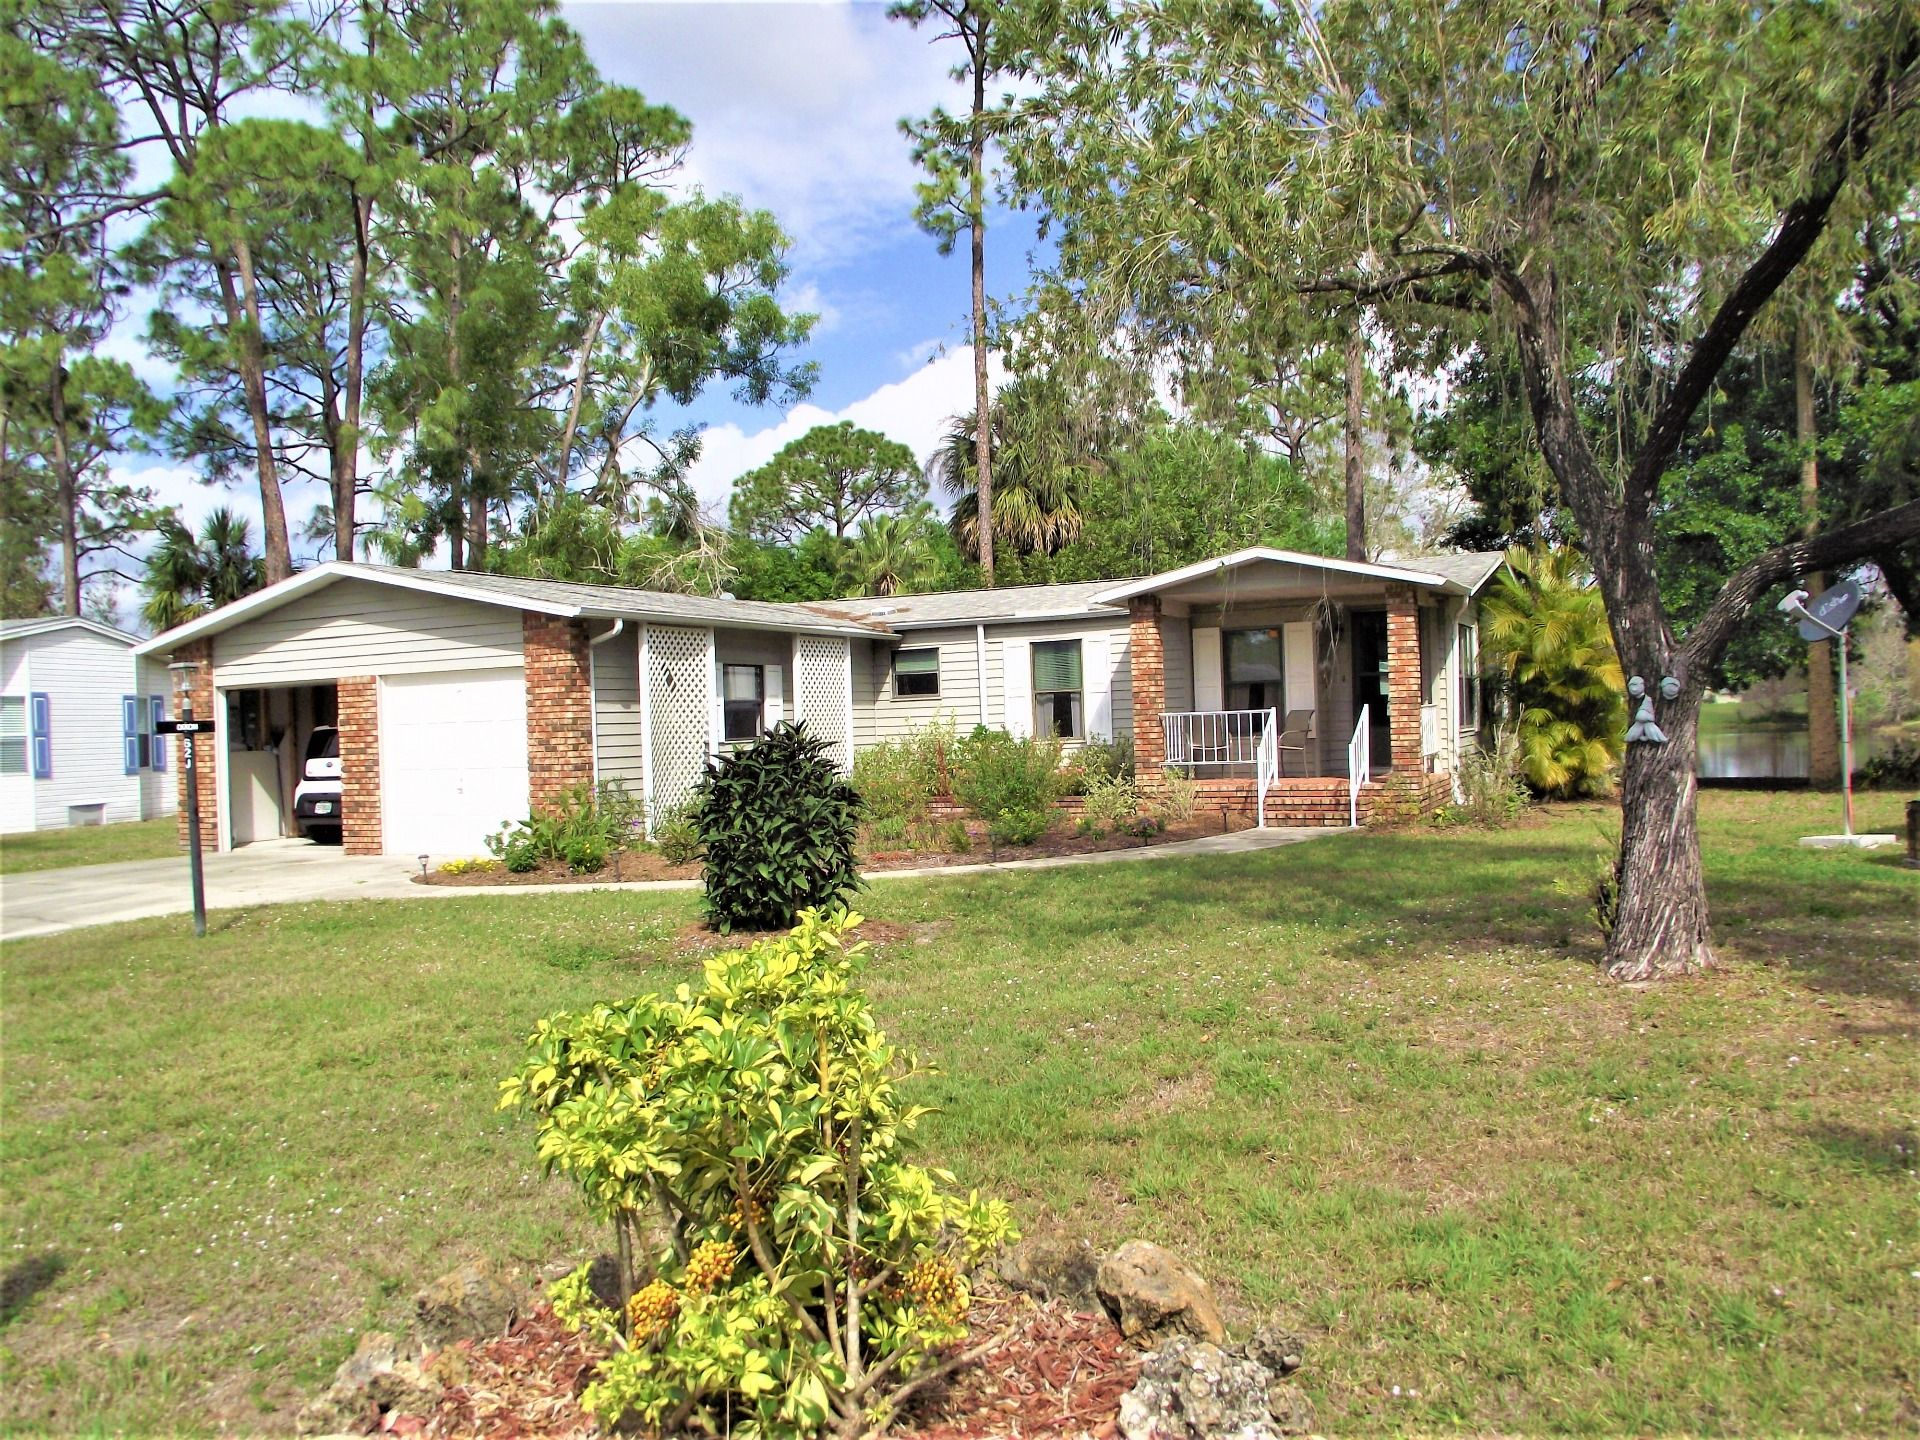 Mobile home for sale located at 19422 tarpon woods ct